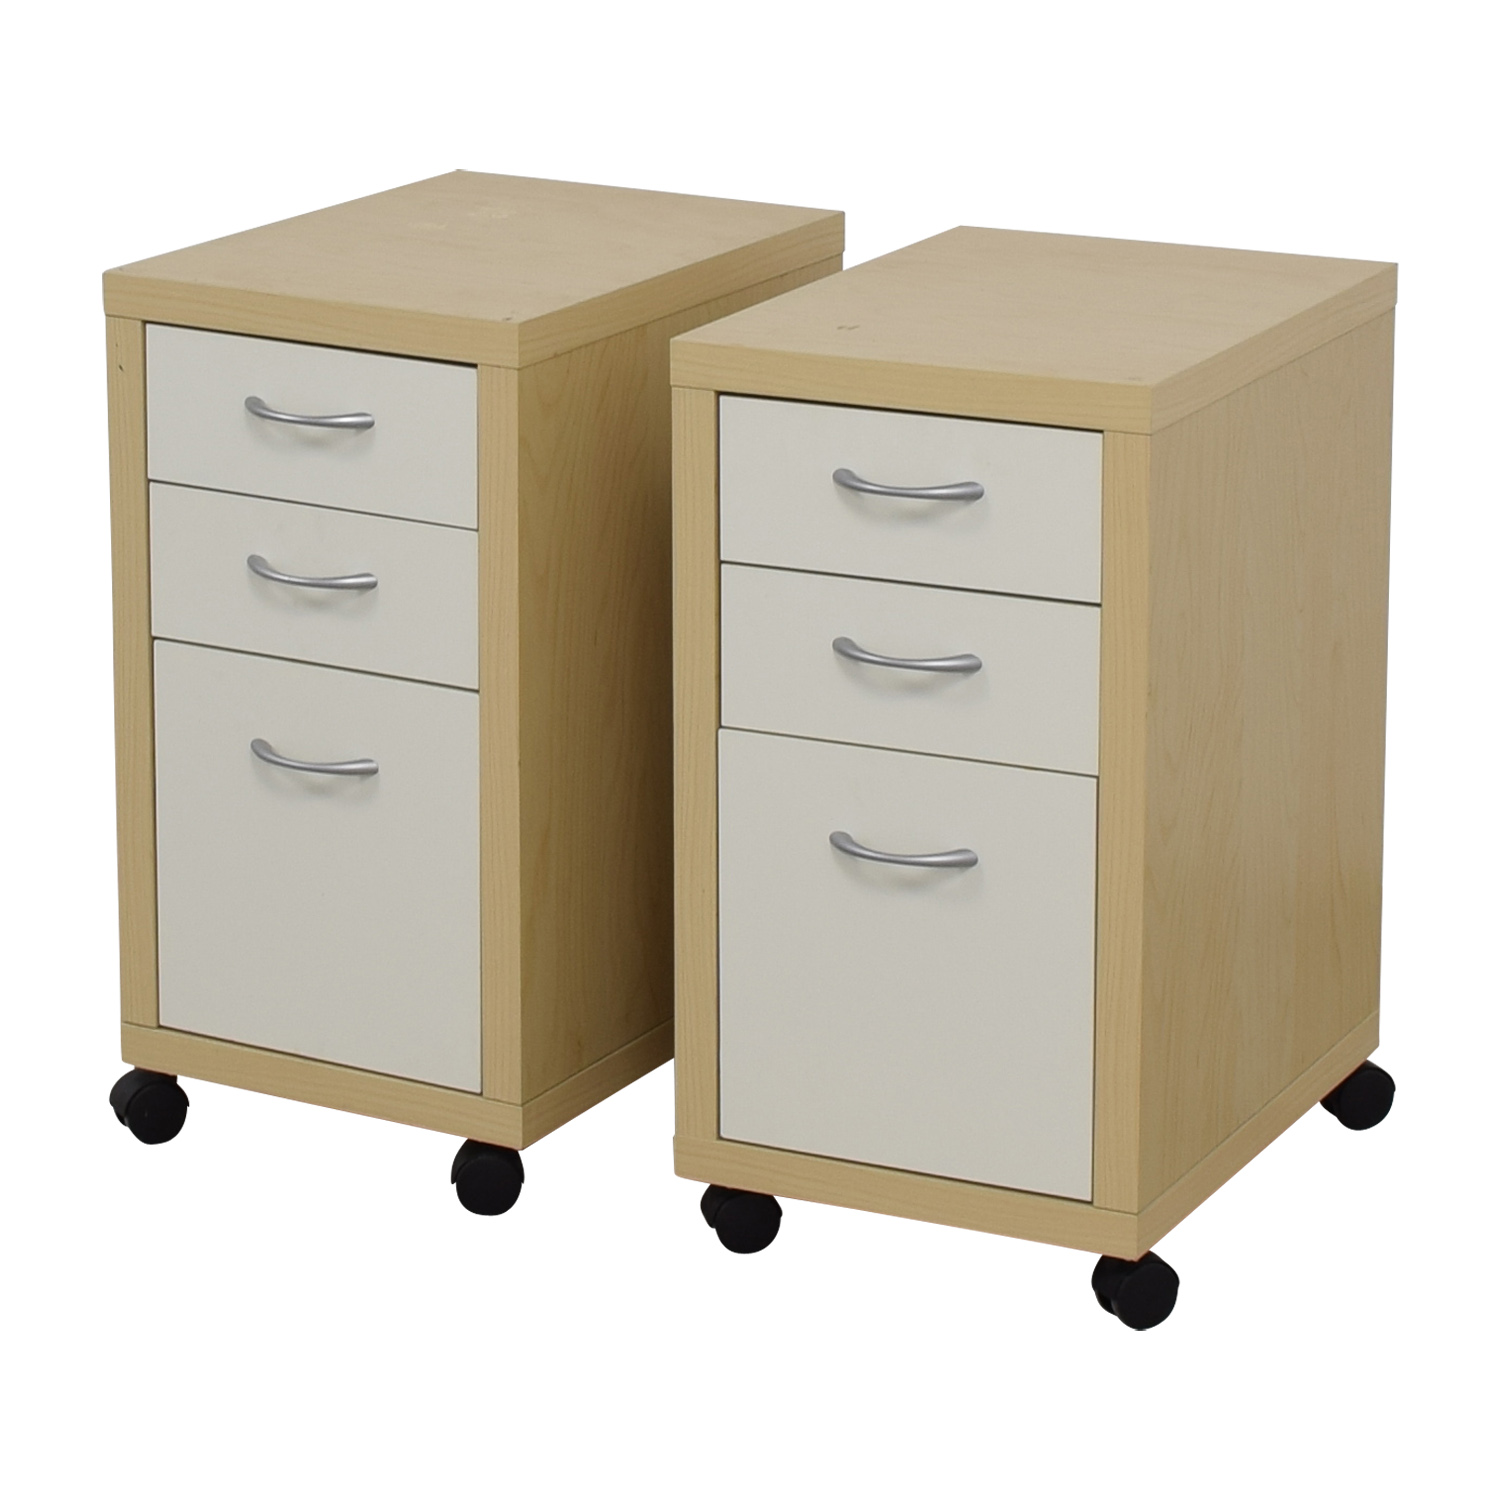 Natural and White Three-Drawer Filing Cabinets price